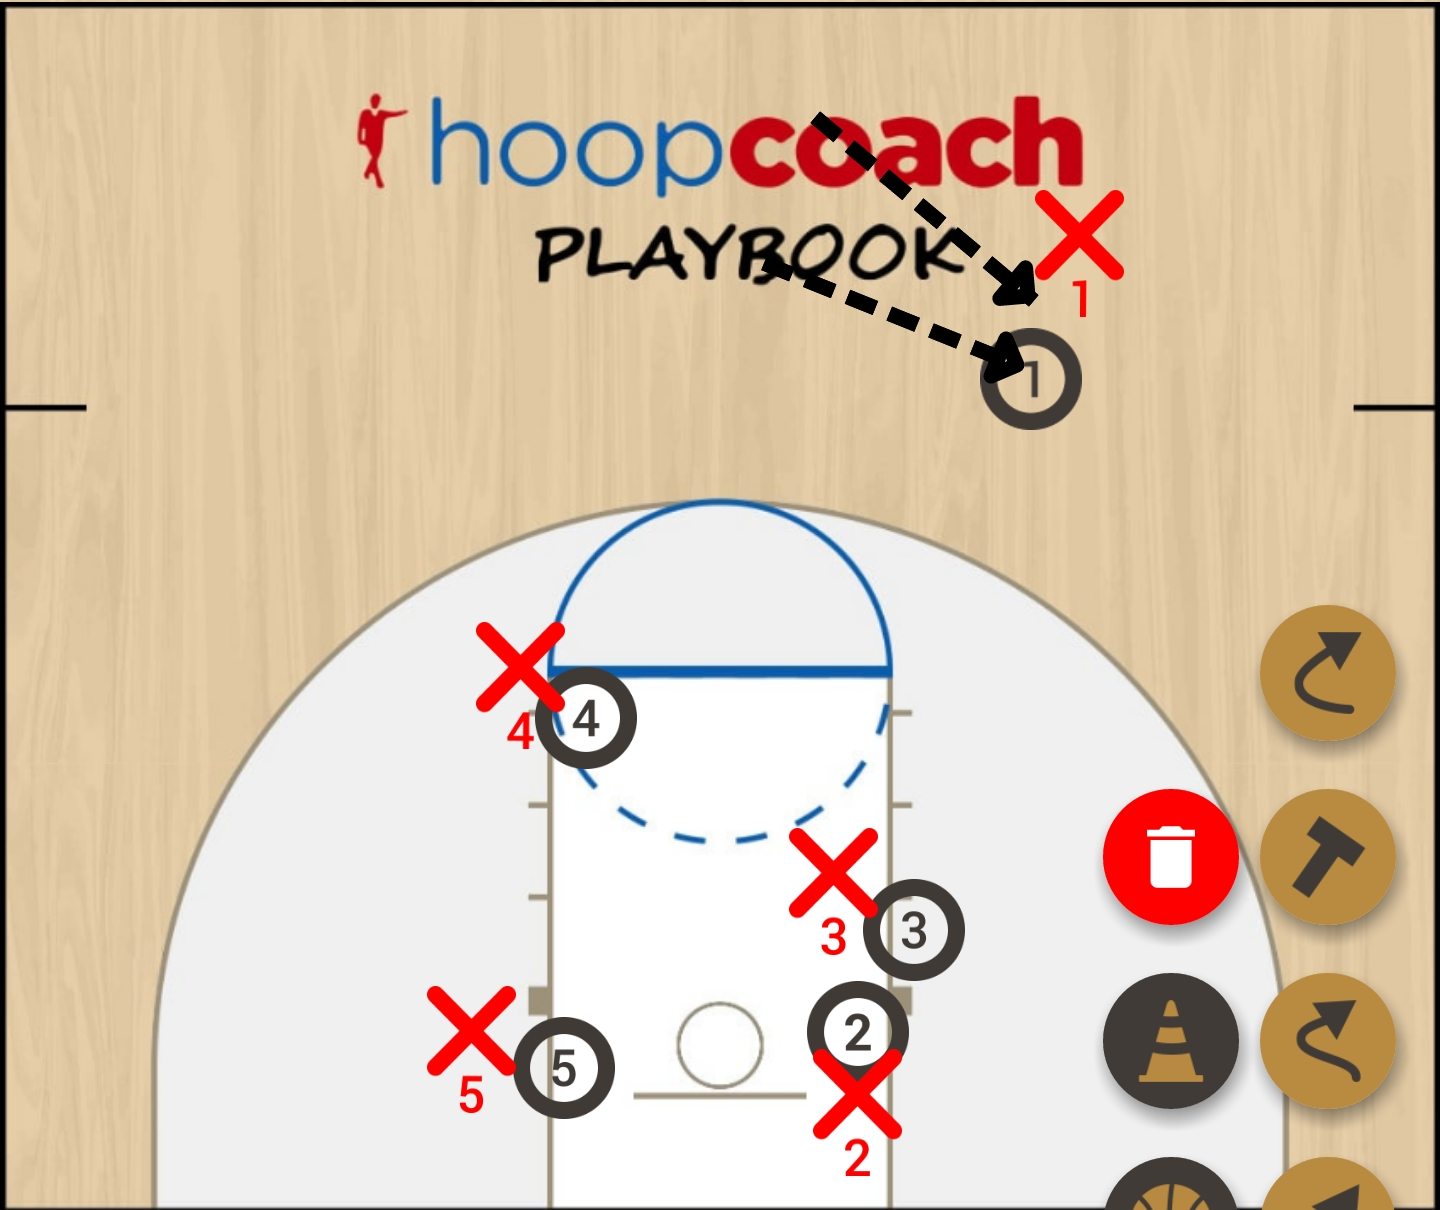 Basketball Play quick Man to Man Offense